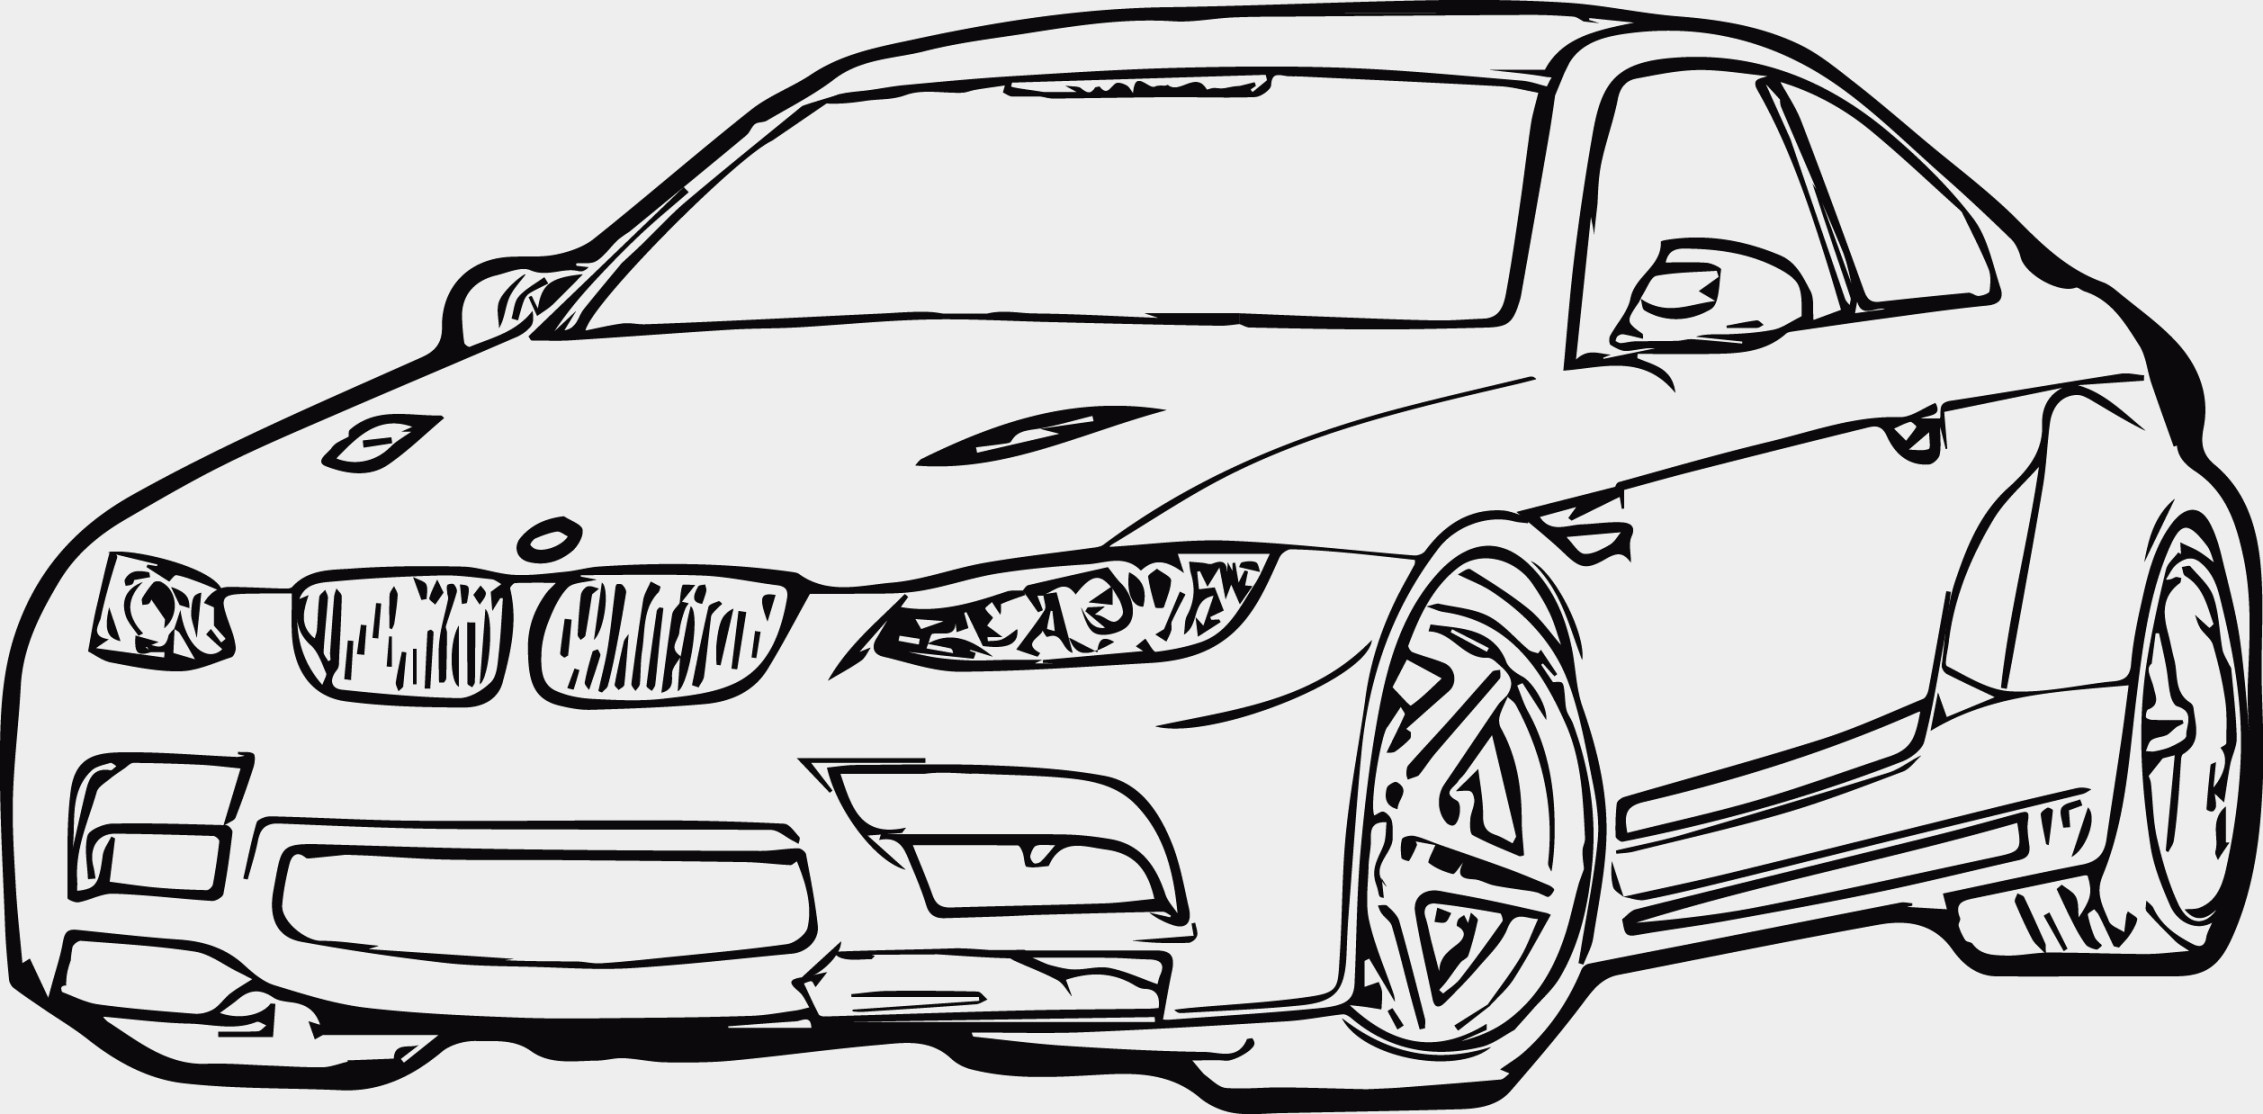 coloring cars bmw tag for coloring page of bmw m3 drawn bmw coloring page cars coloring bmw